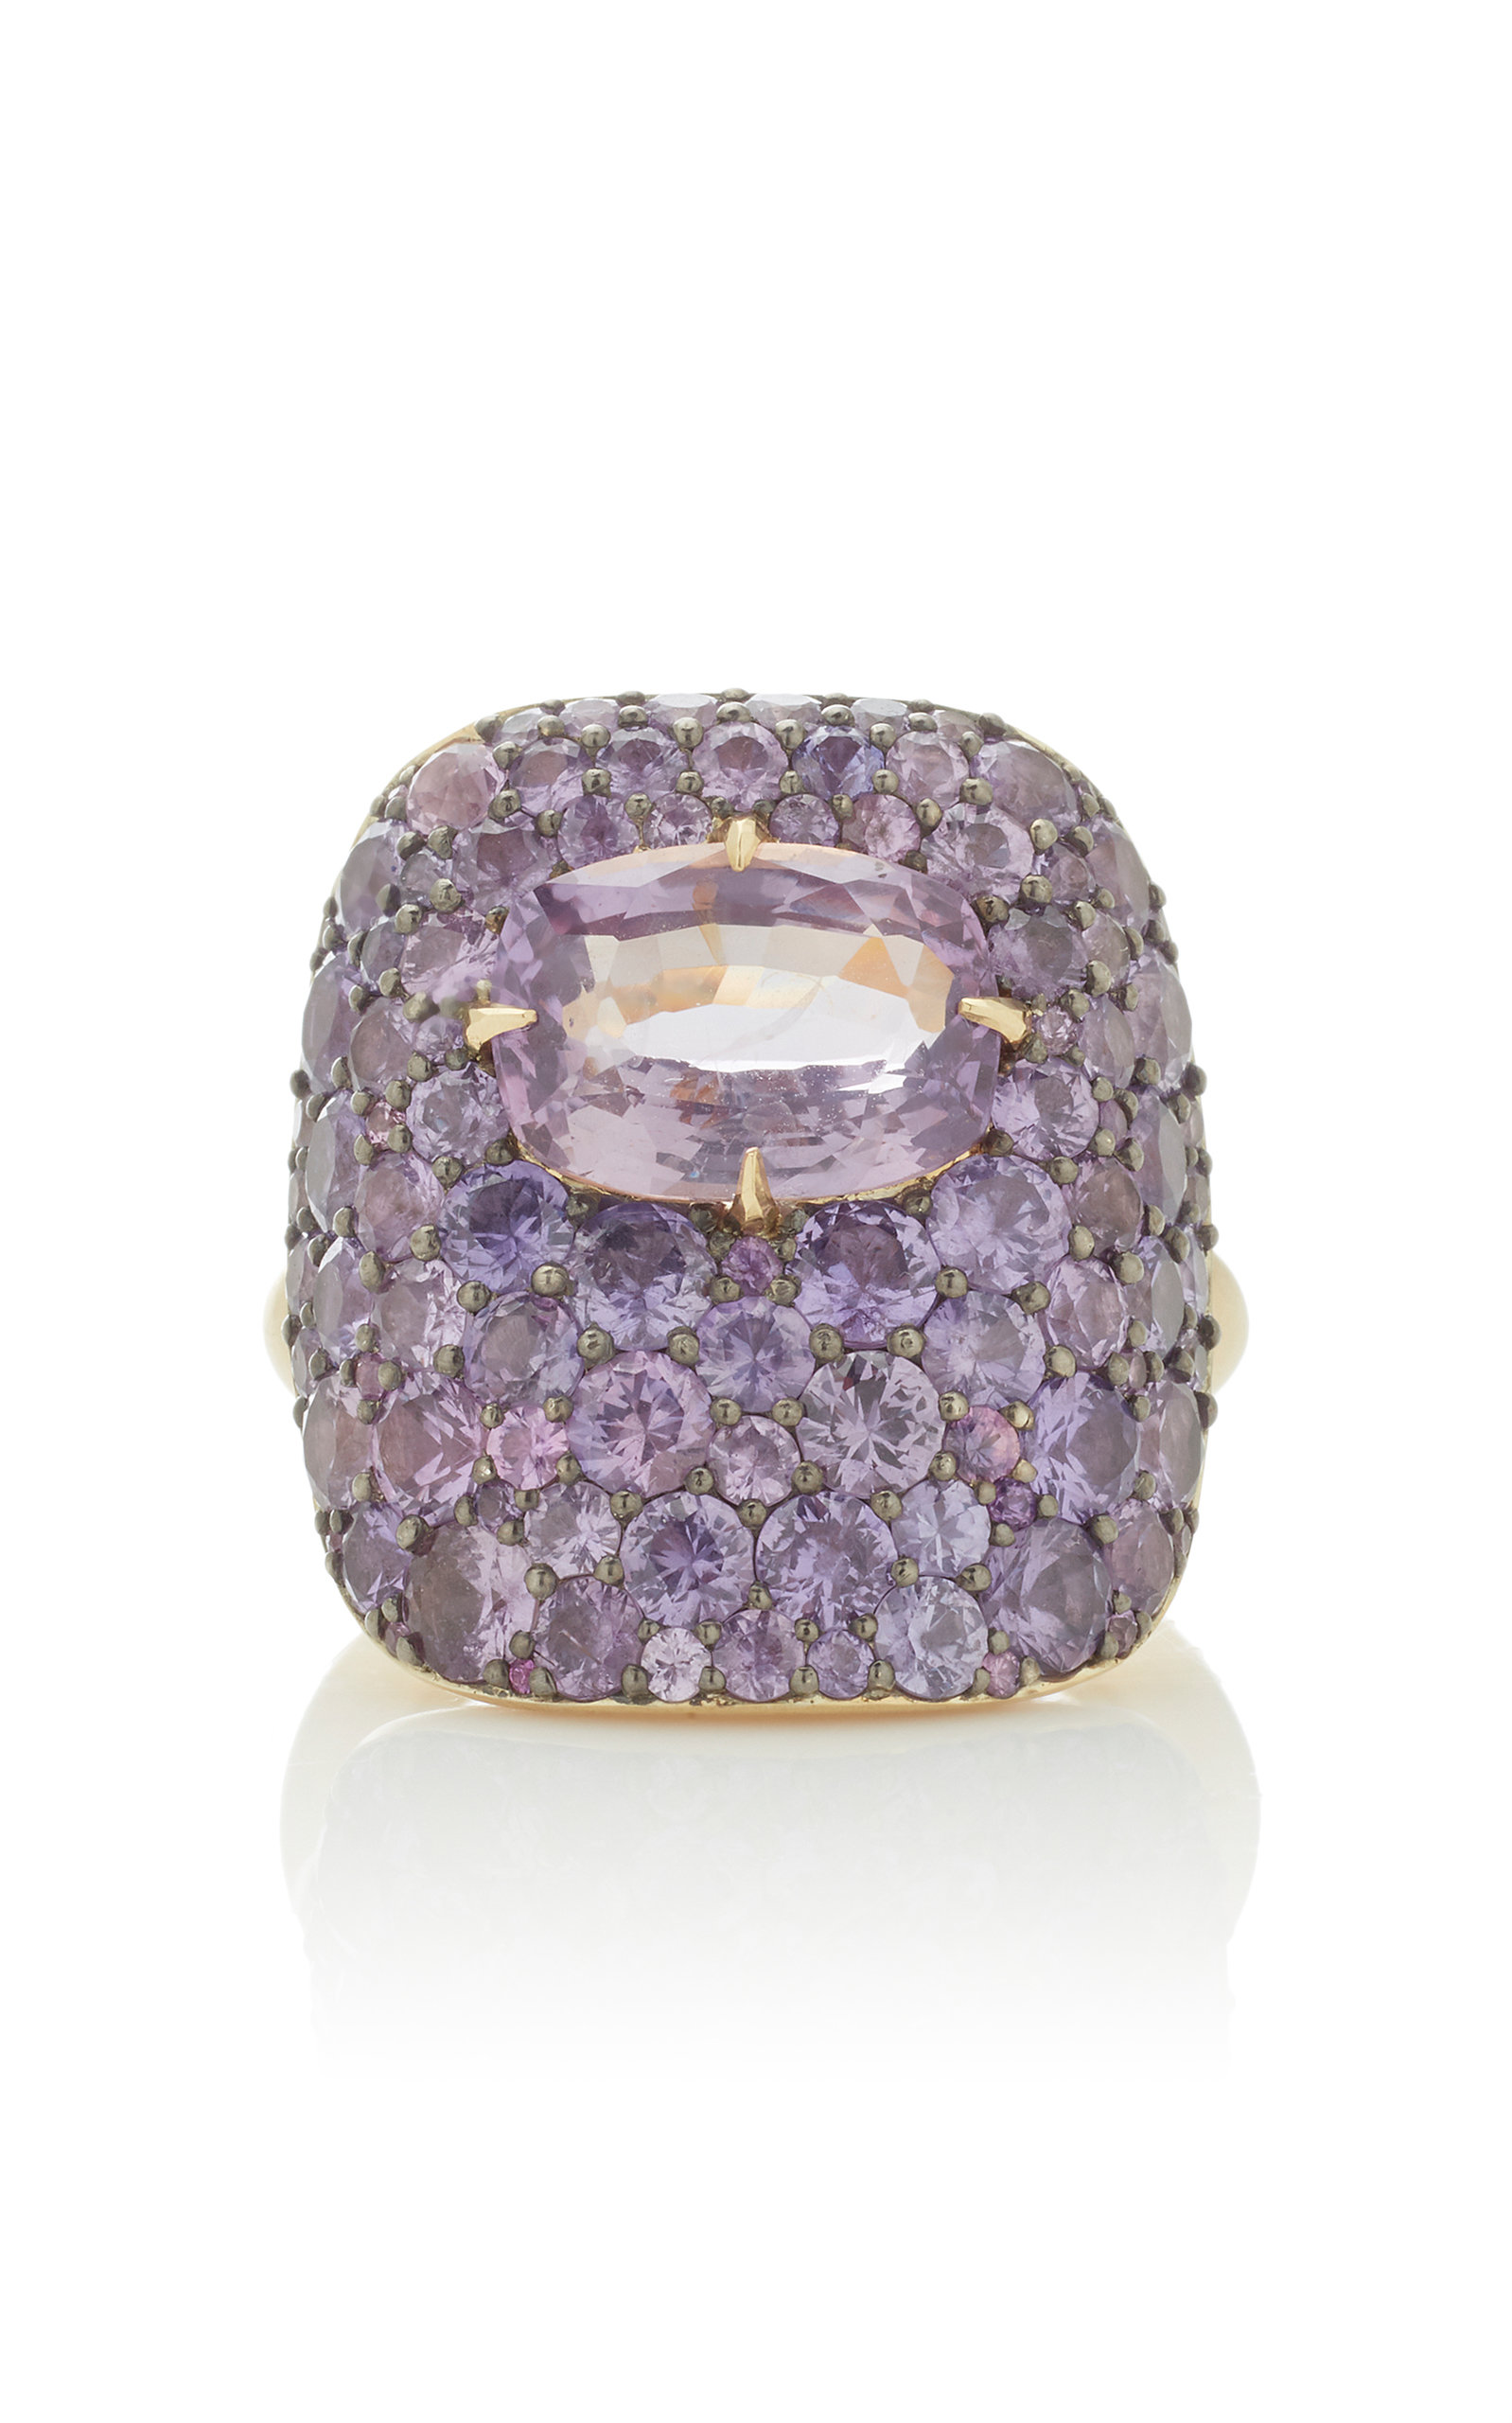 VRAM One-Of-A-Kind 18K Gold Sterling Silver And Sapphire Ring in Purple